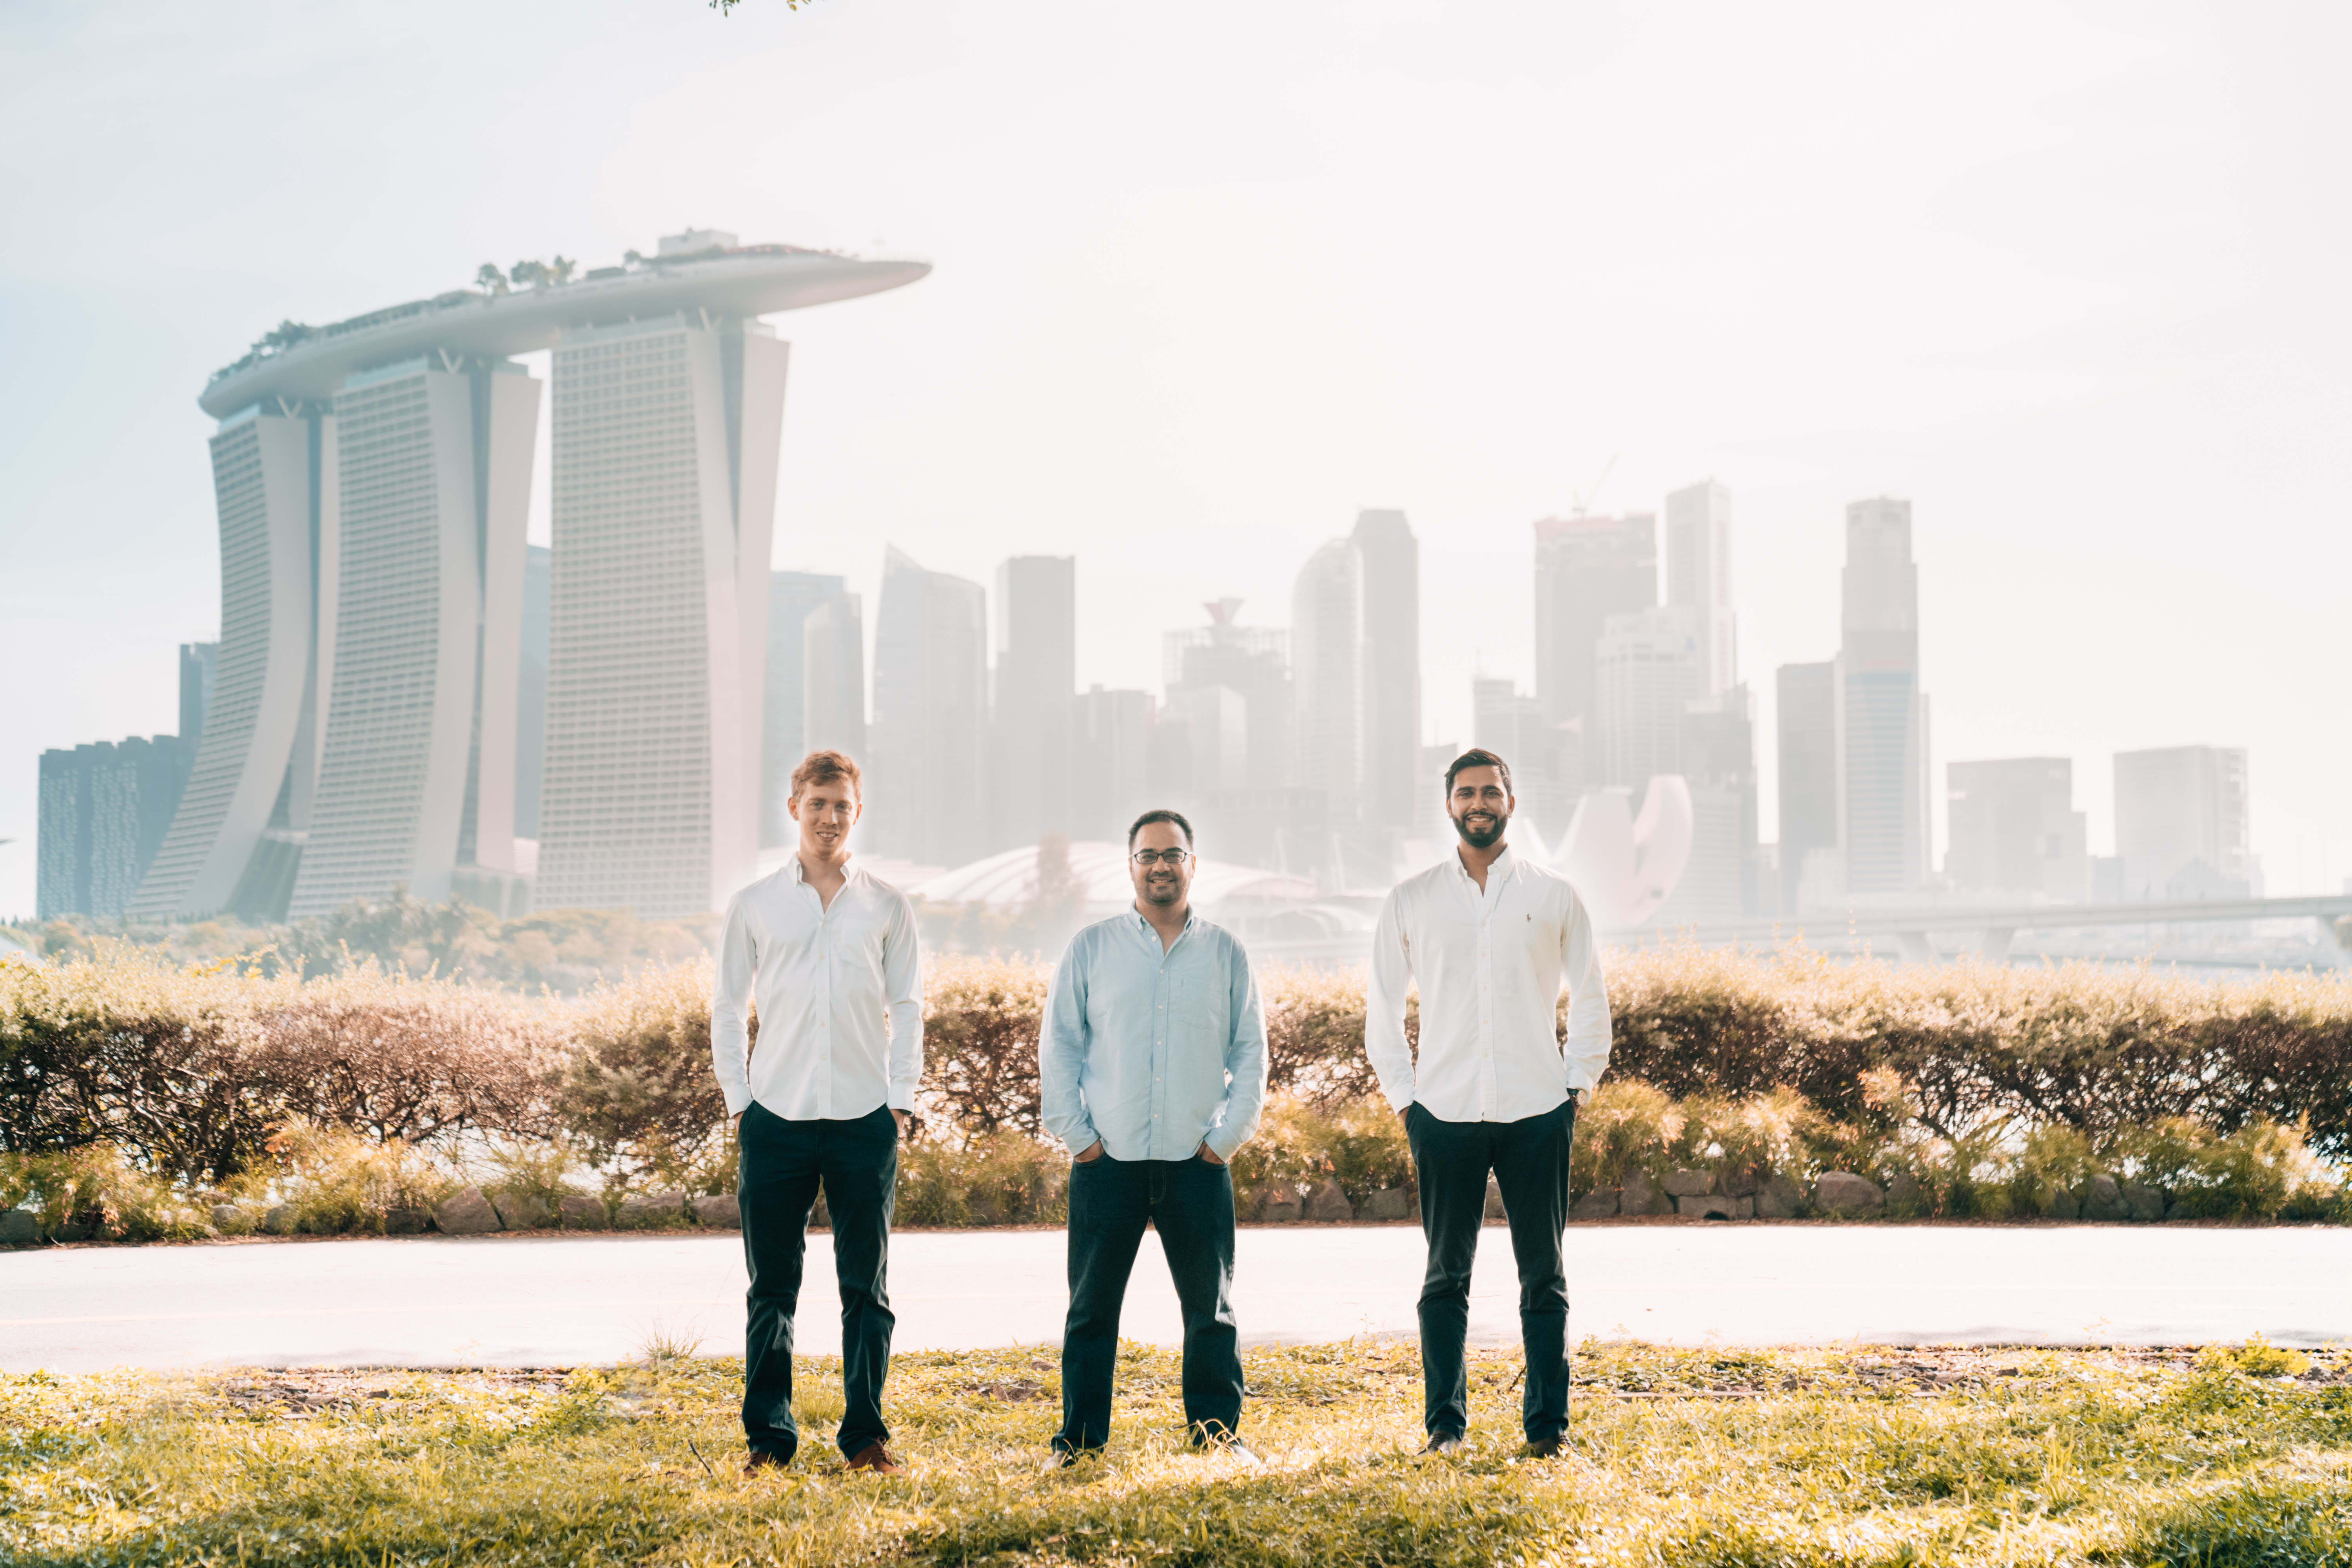 Una Brands' co-founders (from left to right): Tobias Heusch, Kiran Tanna and Kushal Patel